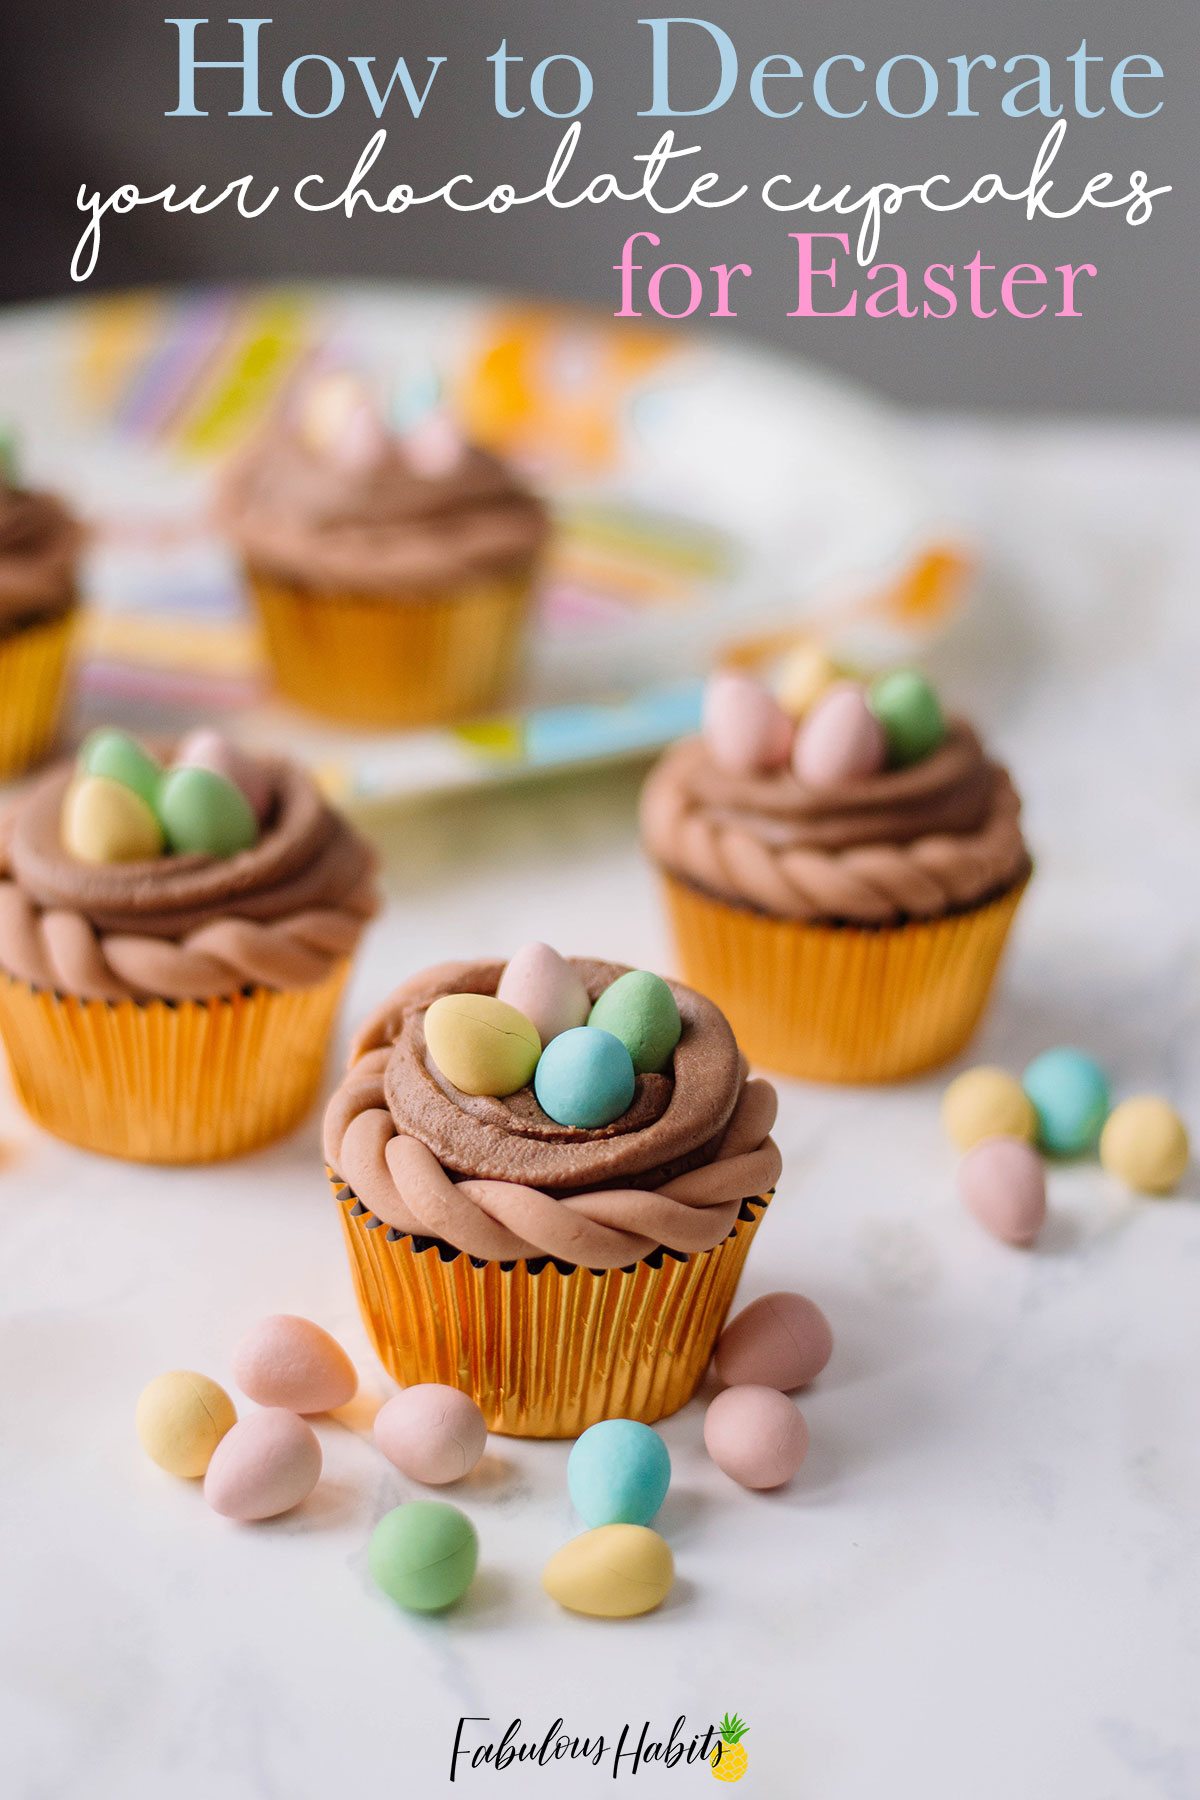 A delicious batch of chocolate cupcakes adorned with a generous amount of mini candy eggs. Perfect for Easter!